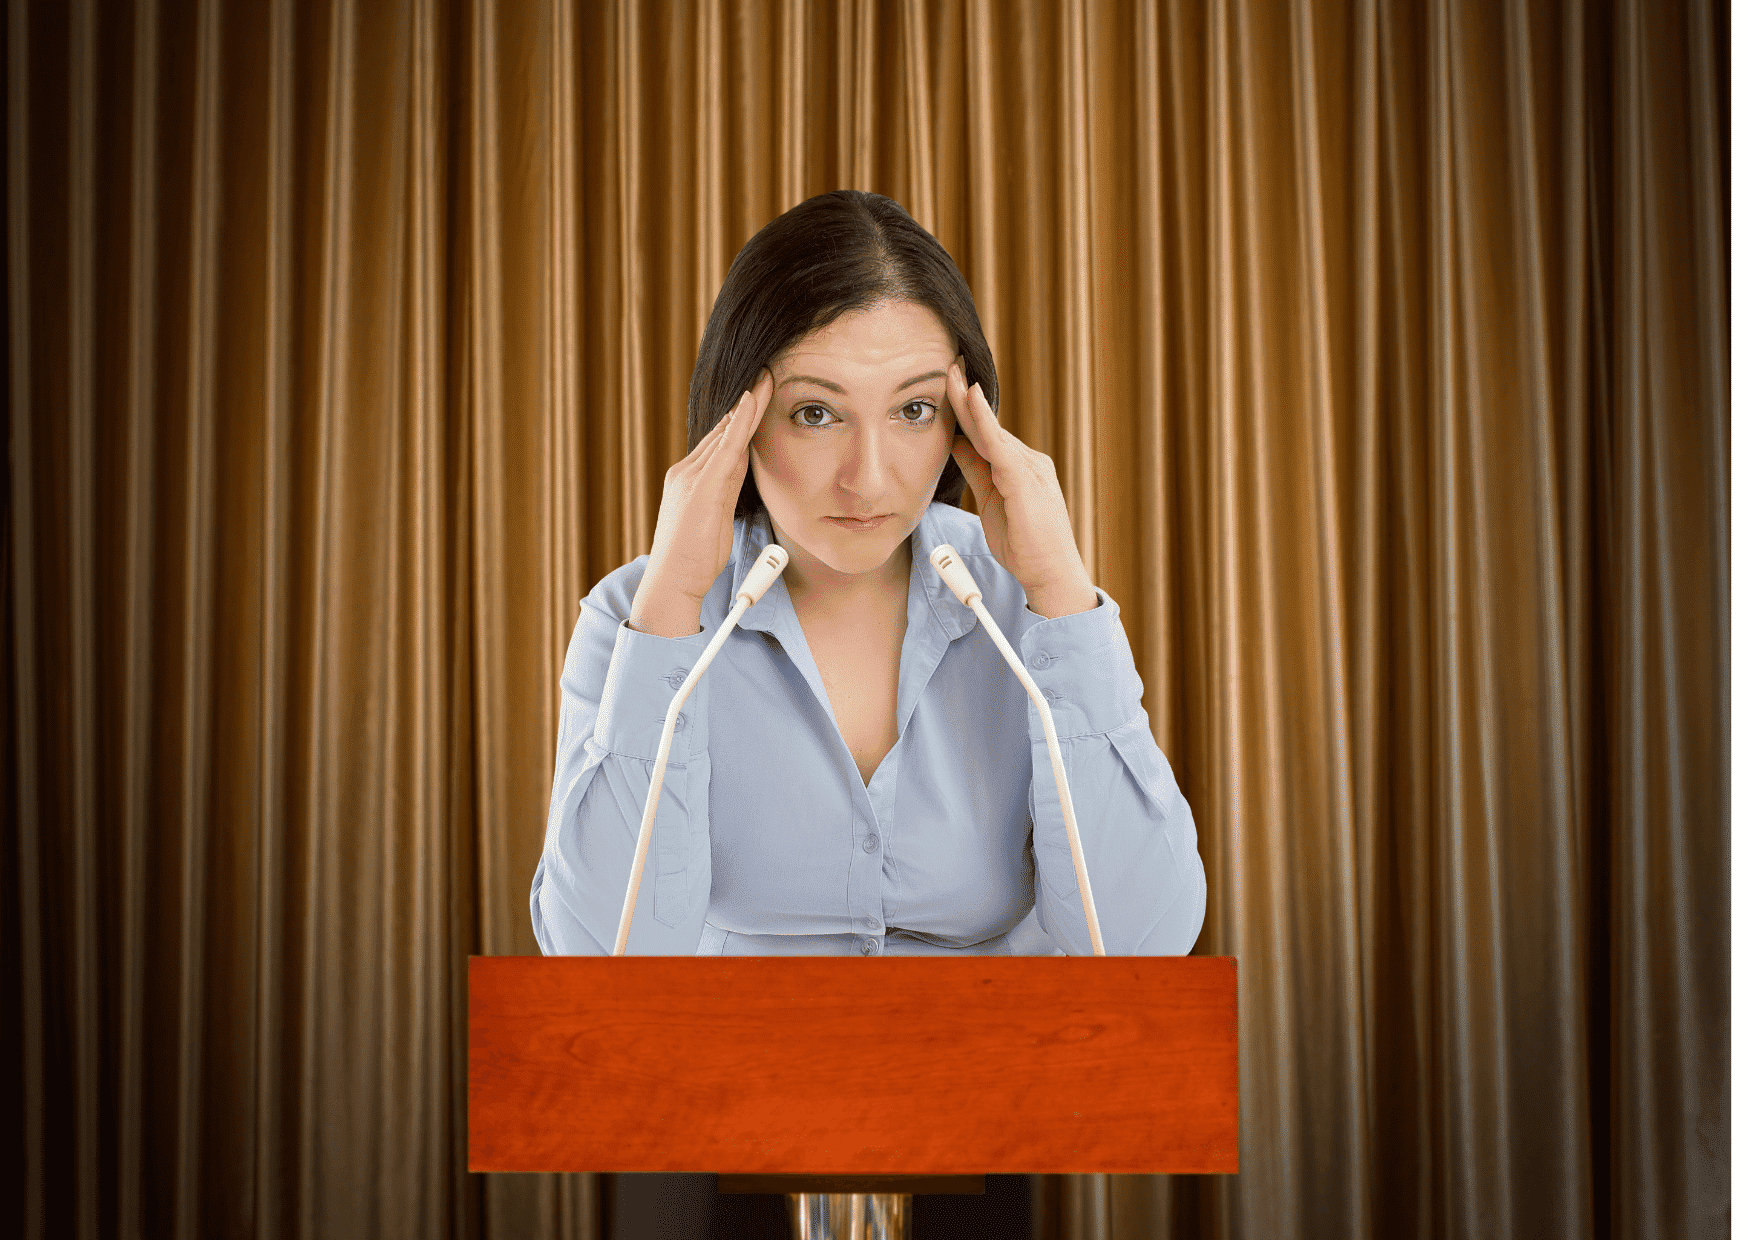 performance anxiety public speaking